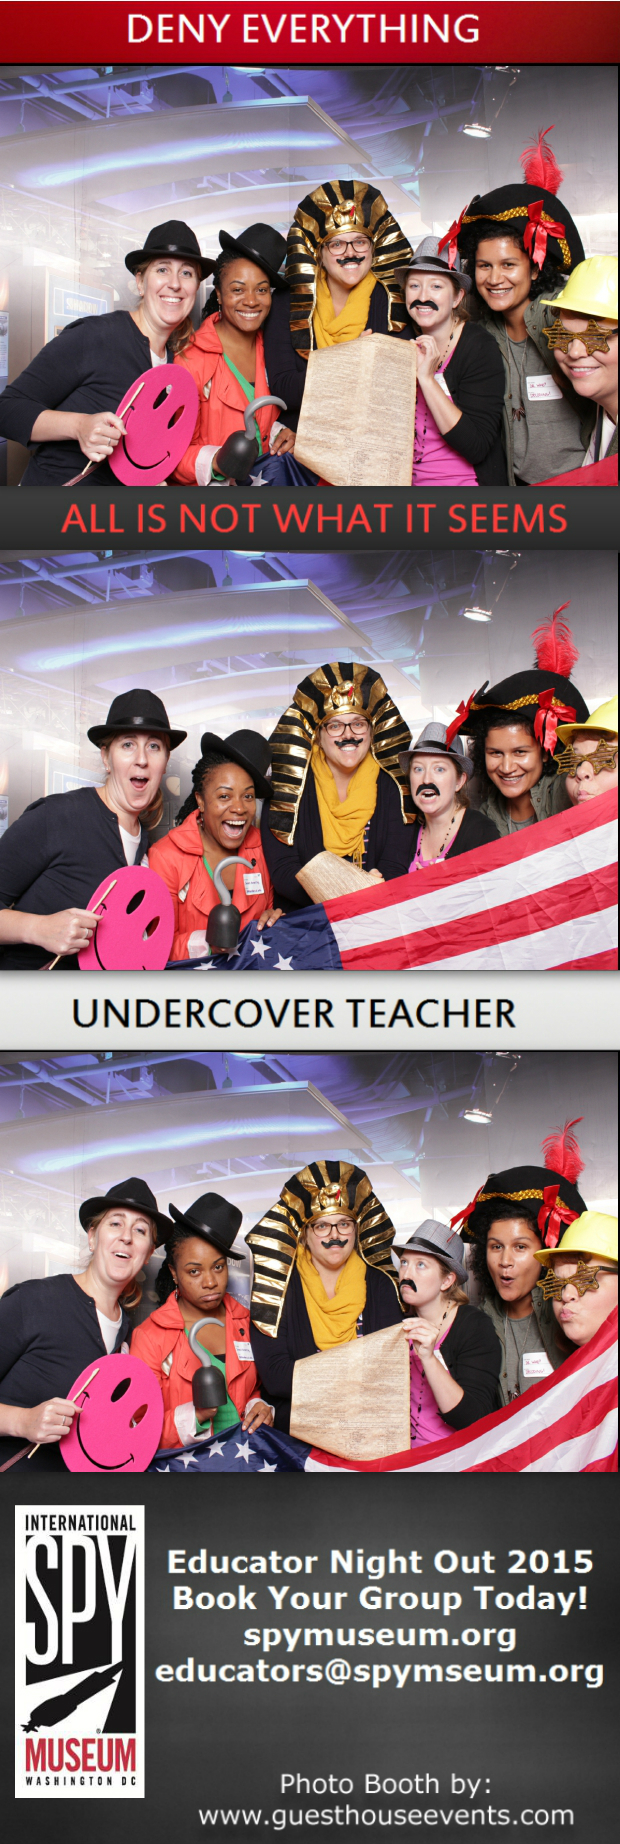 Guest House Events Photo Booth Spy Museum Educator Night Out (31).jpg